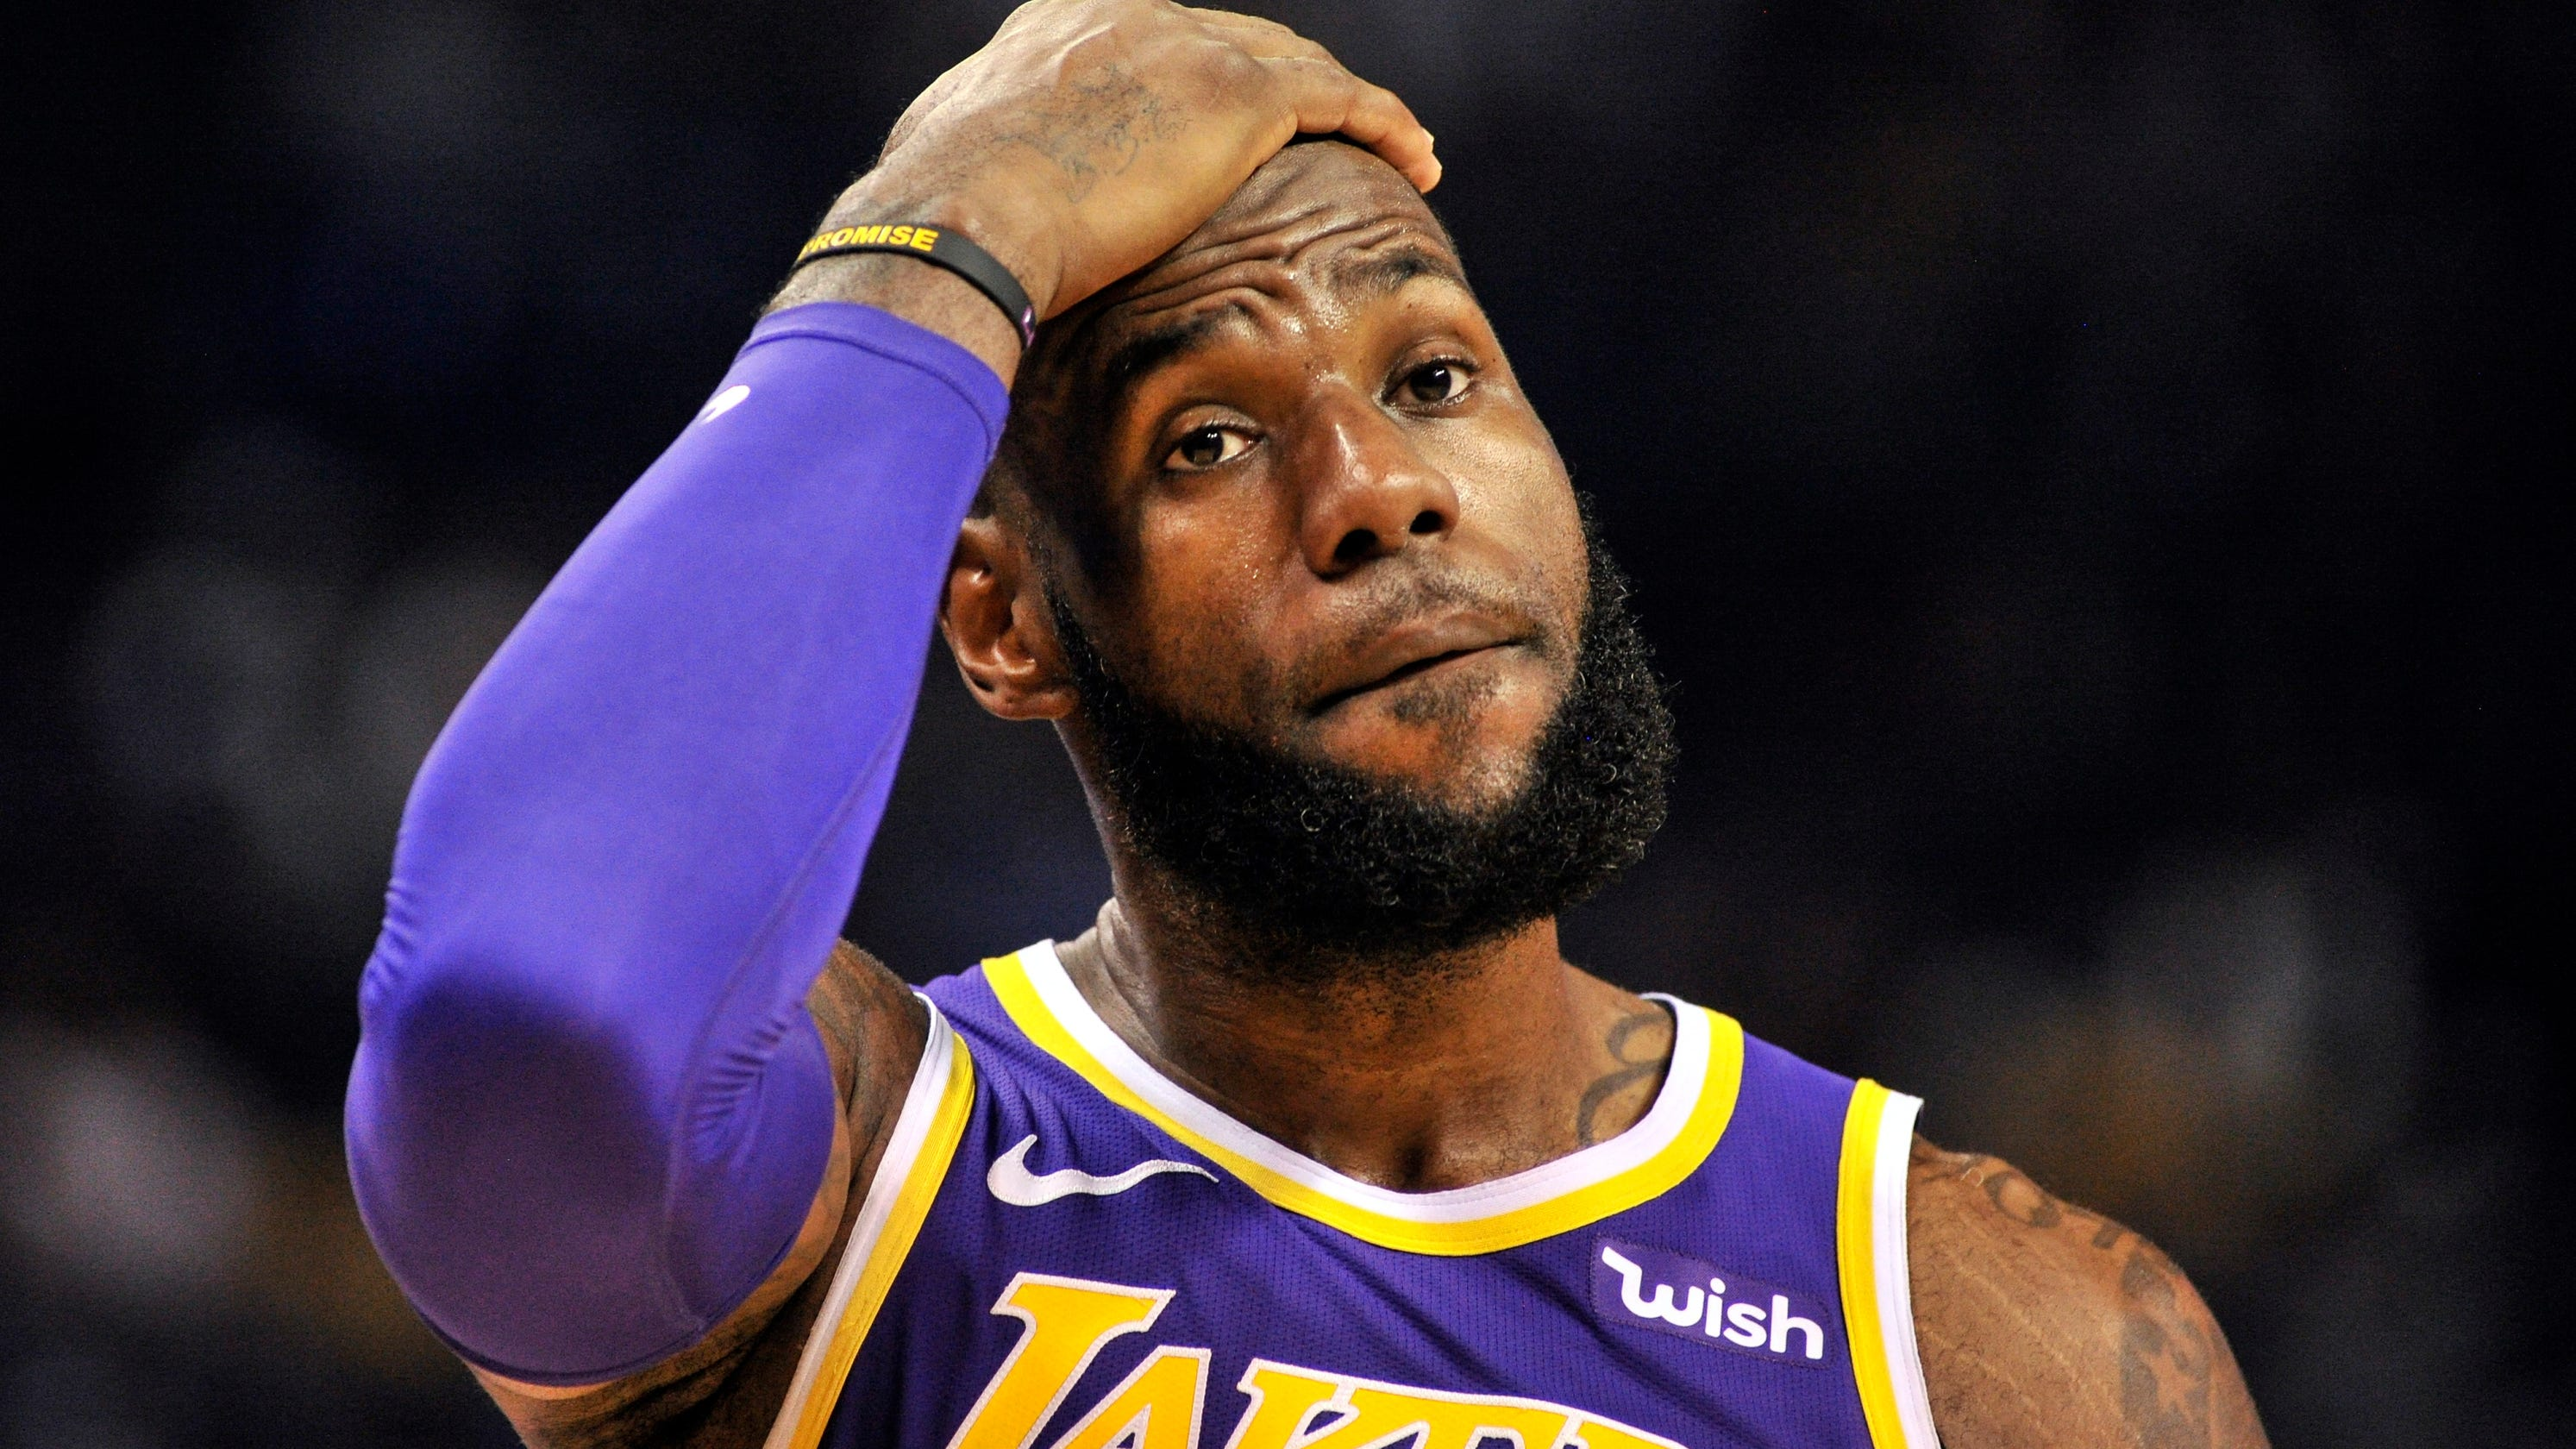 LeBron James has strong comments after Lakers loss to Grizzlies